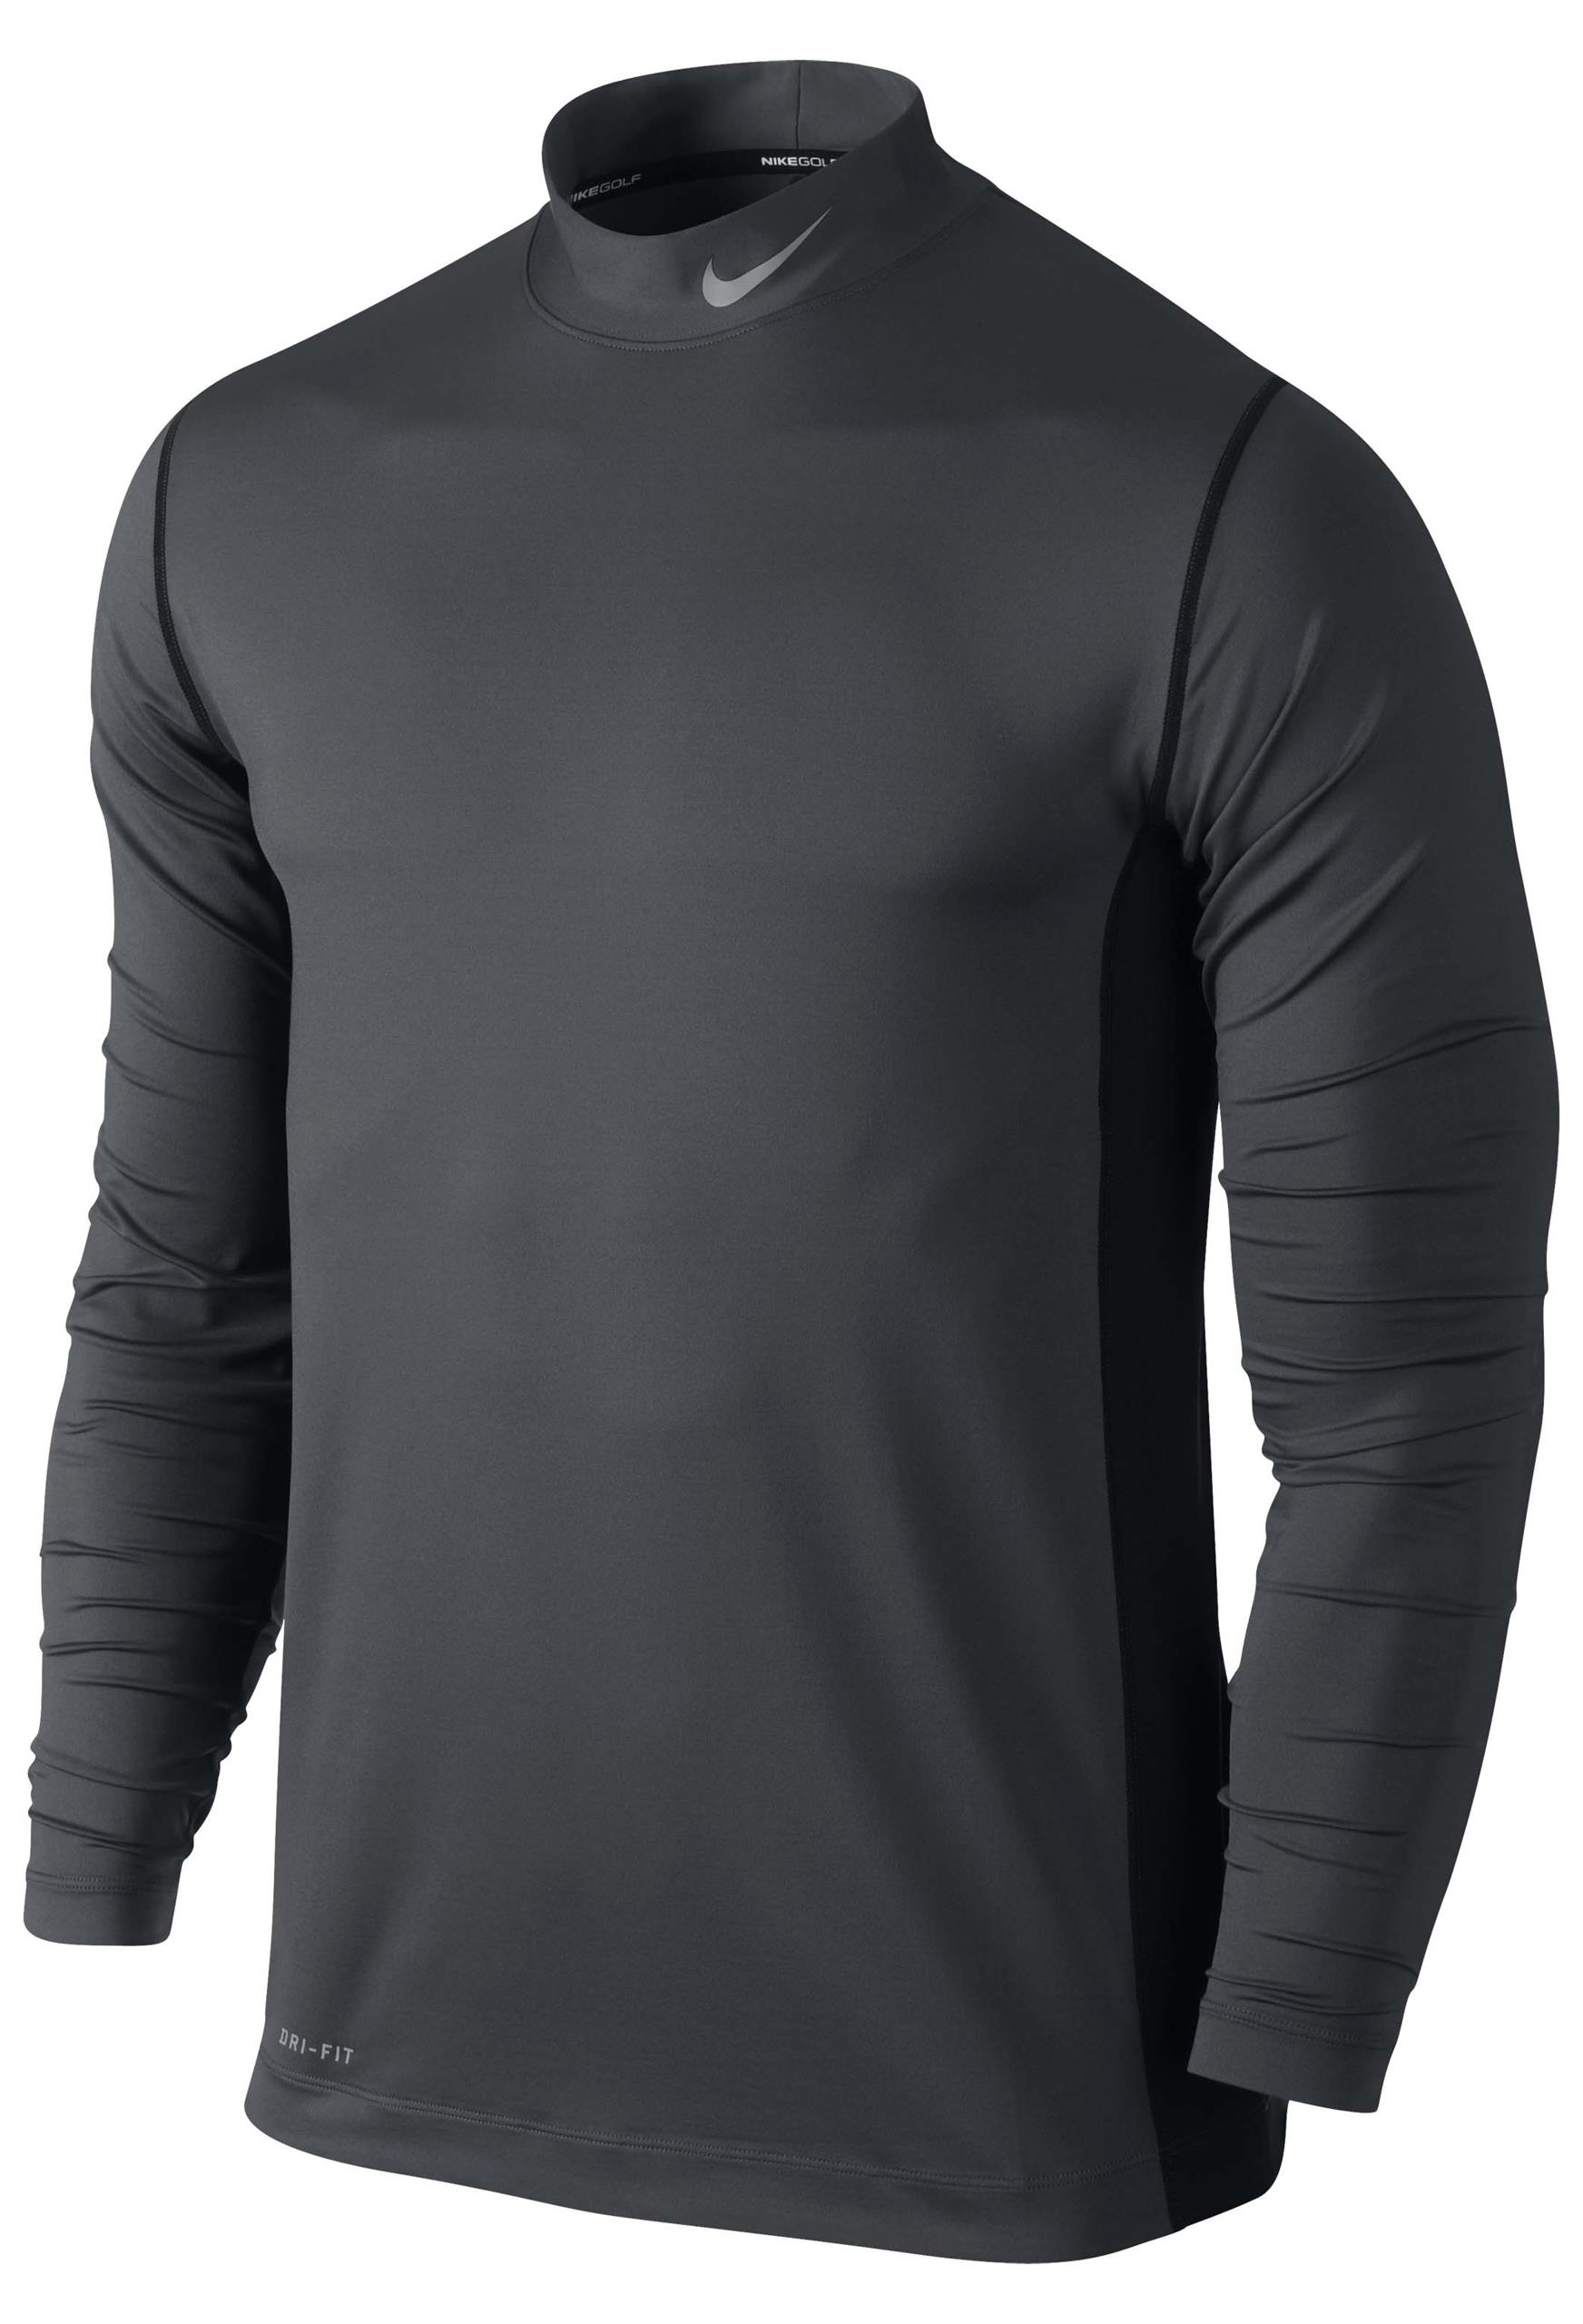 New Mens Nike Dri Fit High Neck Long Sleeved Lightweight